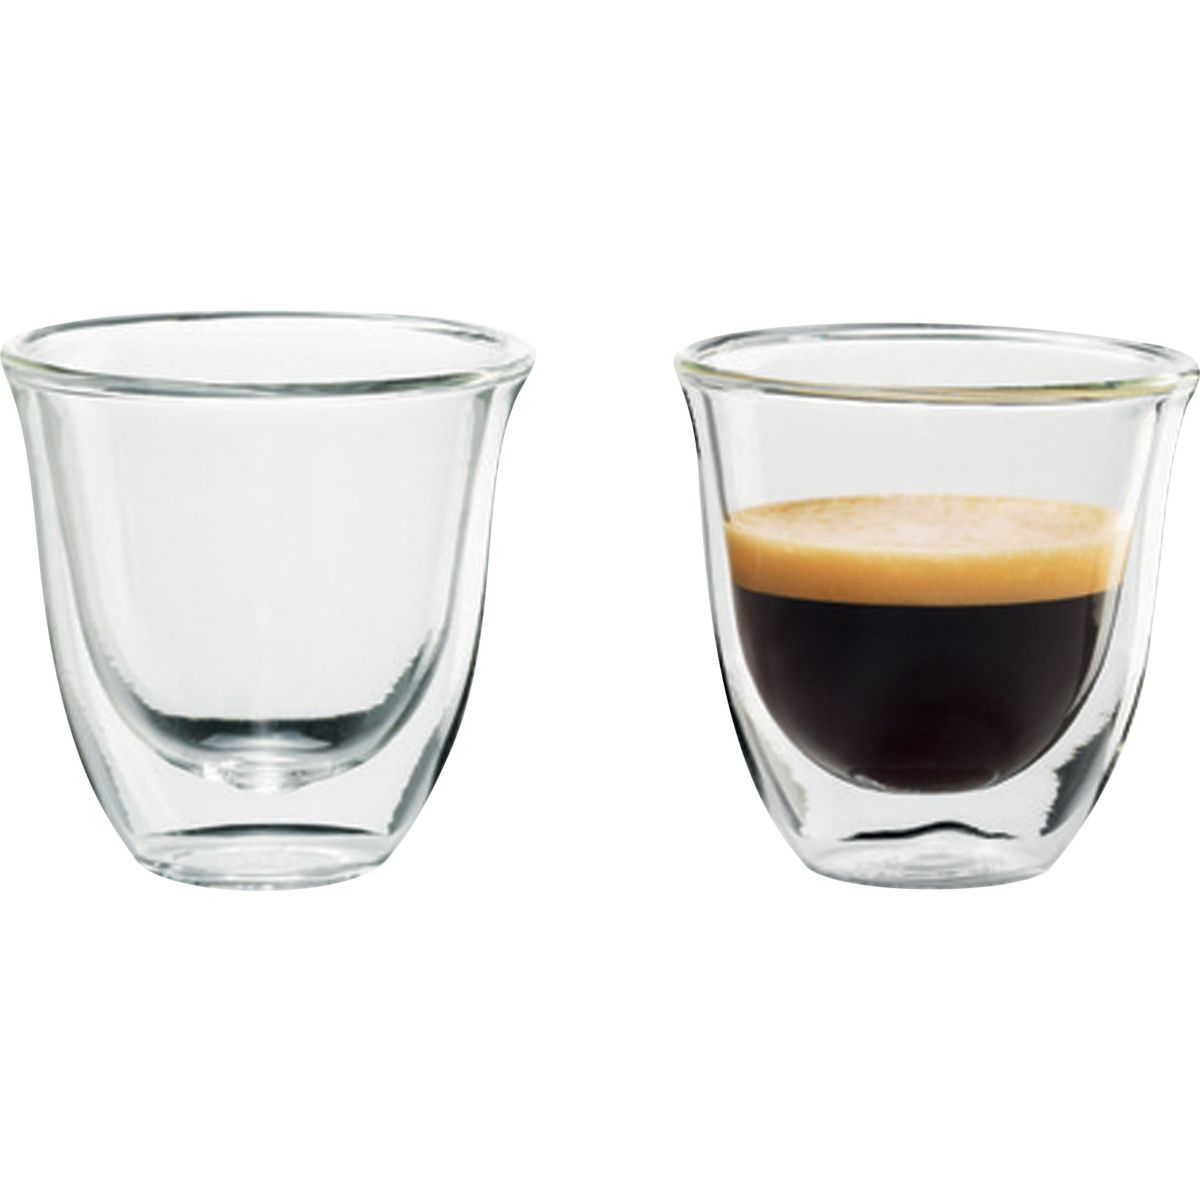 Tasse delonghi espresso lot 2 x60ml (photo)